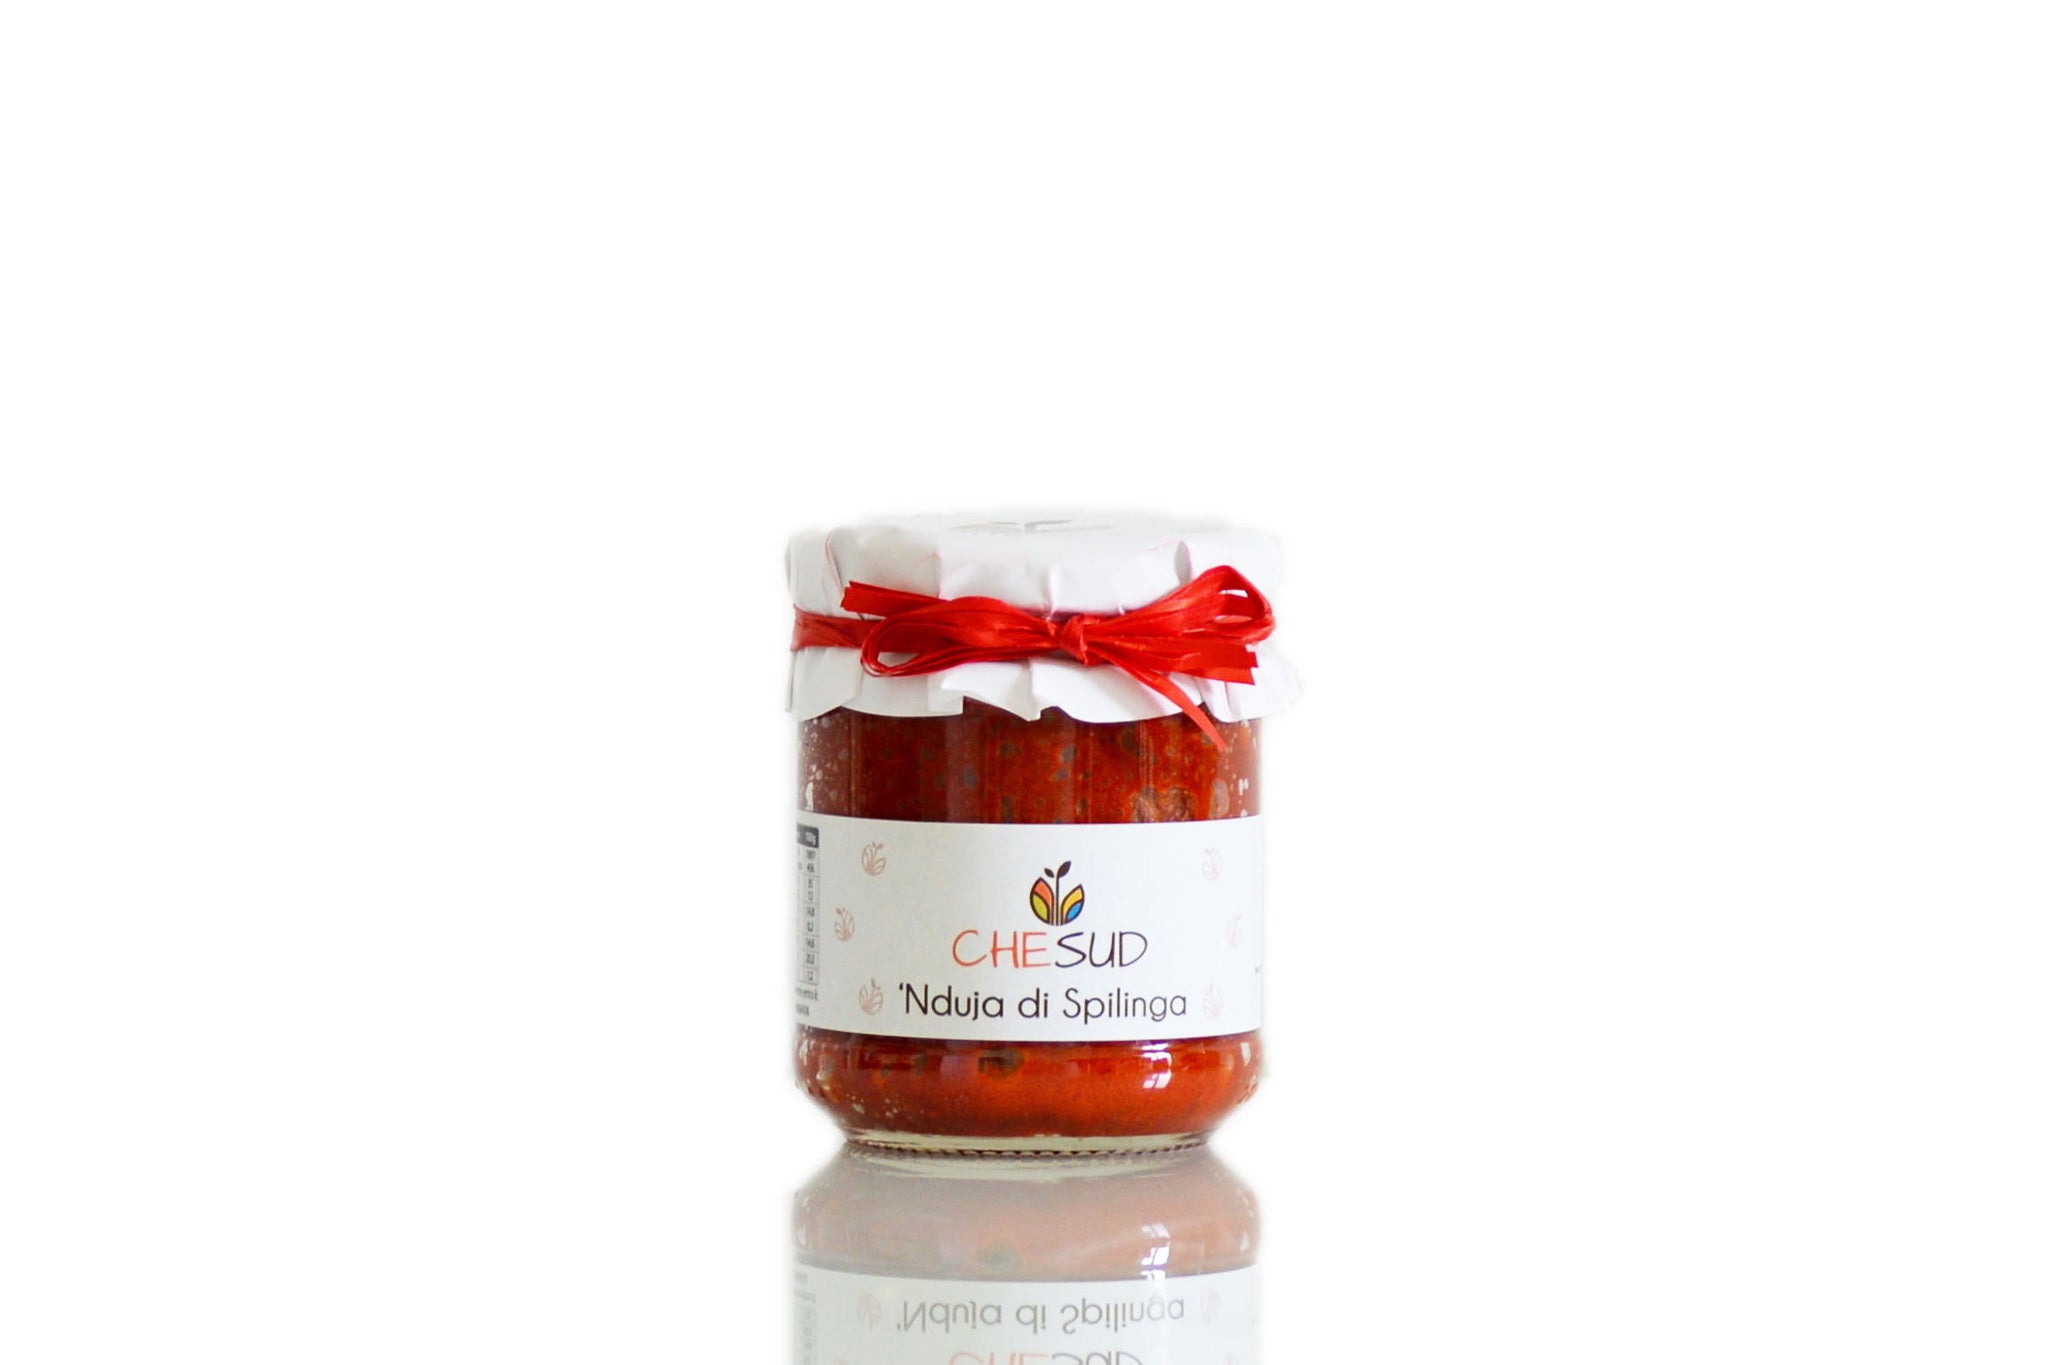 Che Sud Nduja di Spilinga. Calabrian spicy spreadable sausage 180g